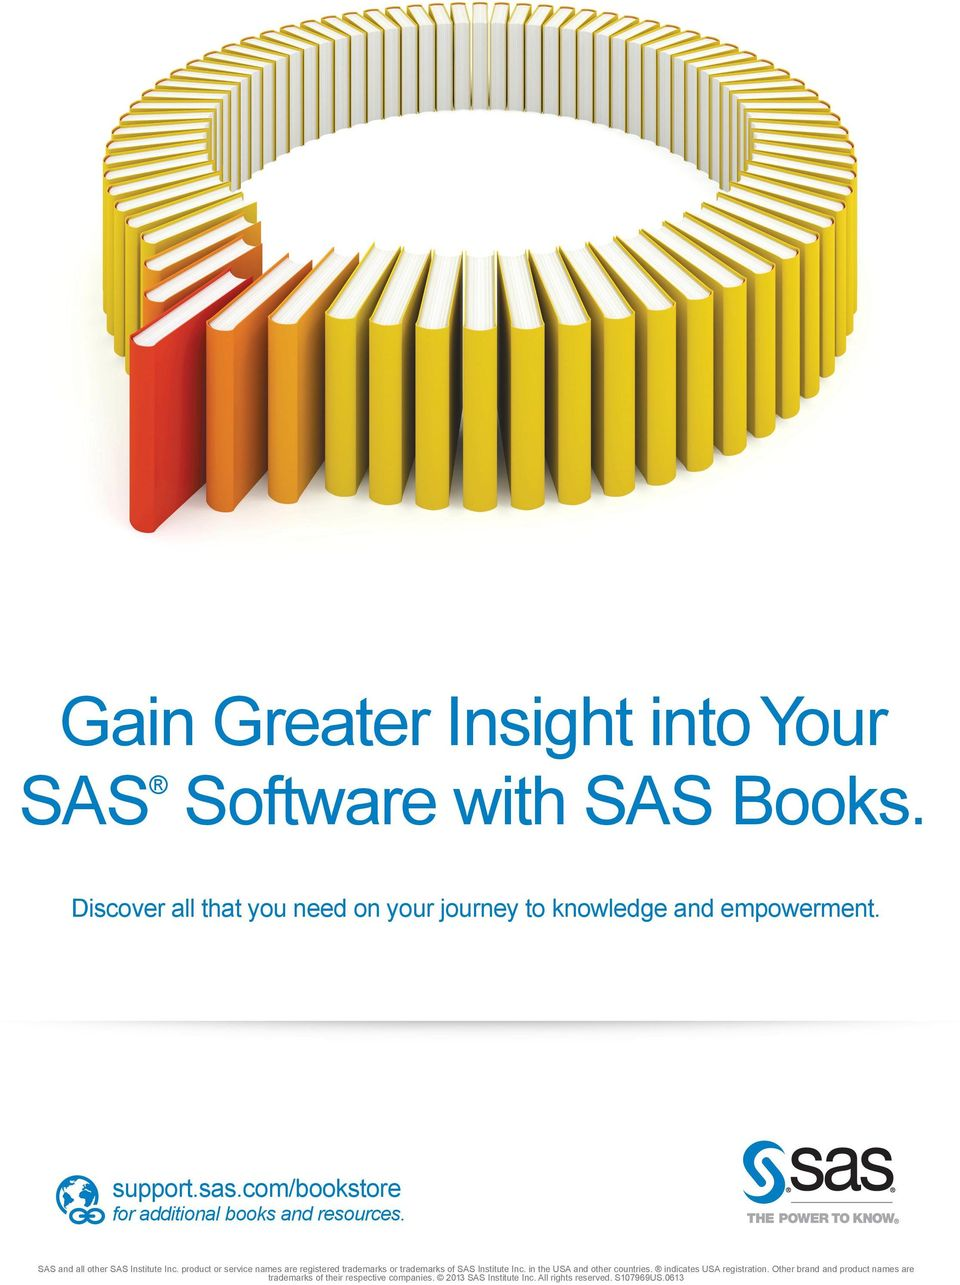 com/bookstore for additional books and resources. SAS and all other SAS Institute Inc.